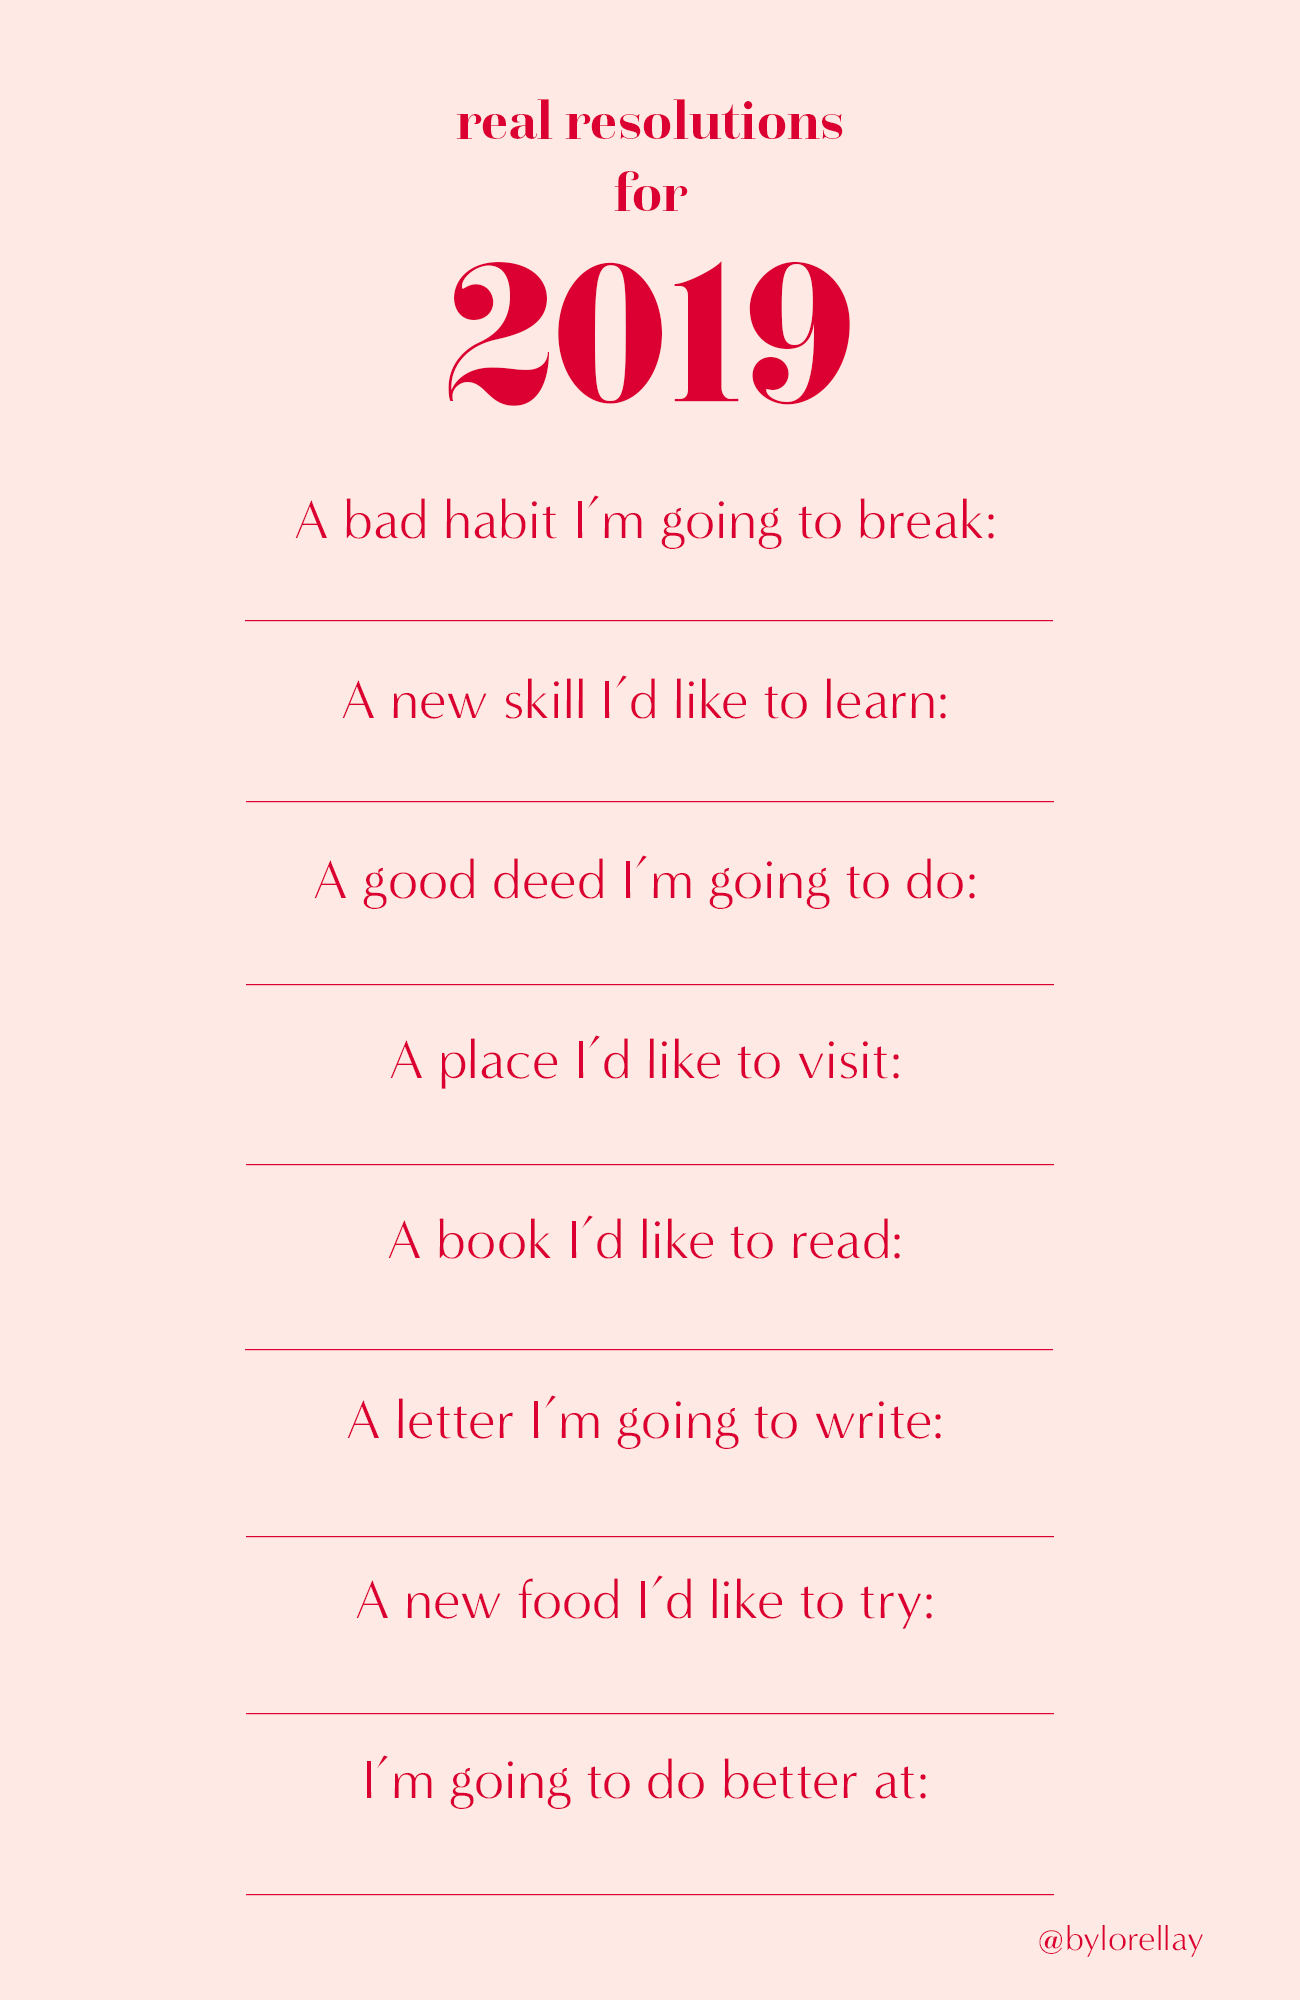 instagram story template for new year resolutions